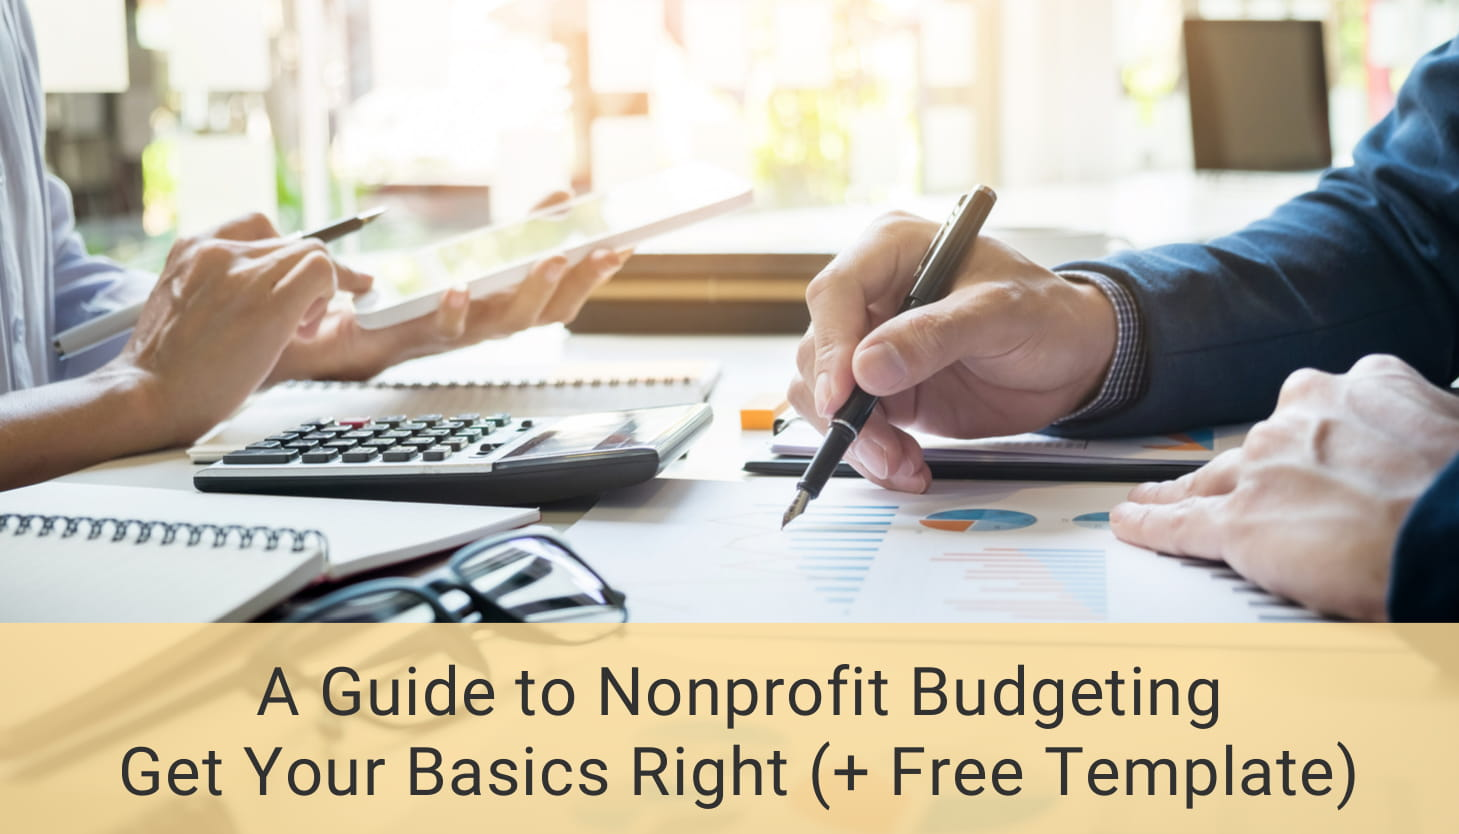 A Guide To Nonprofit Budgeting Get Your Basics Right Free Template